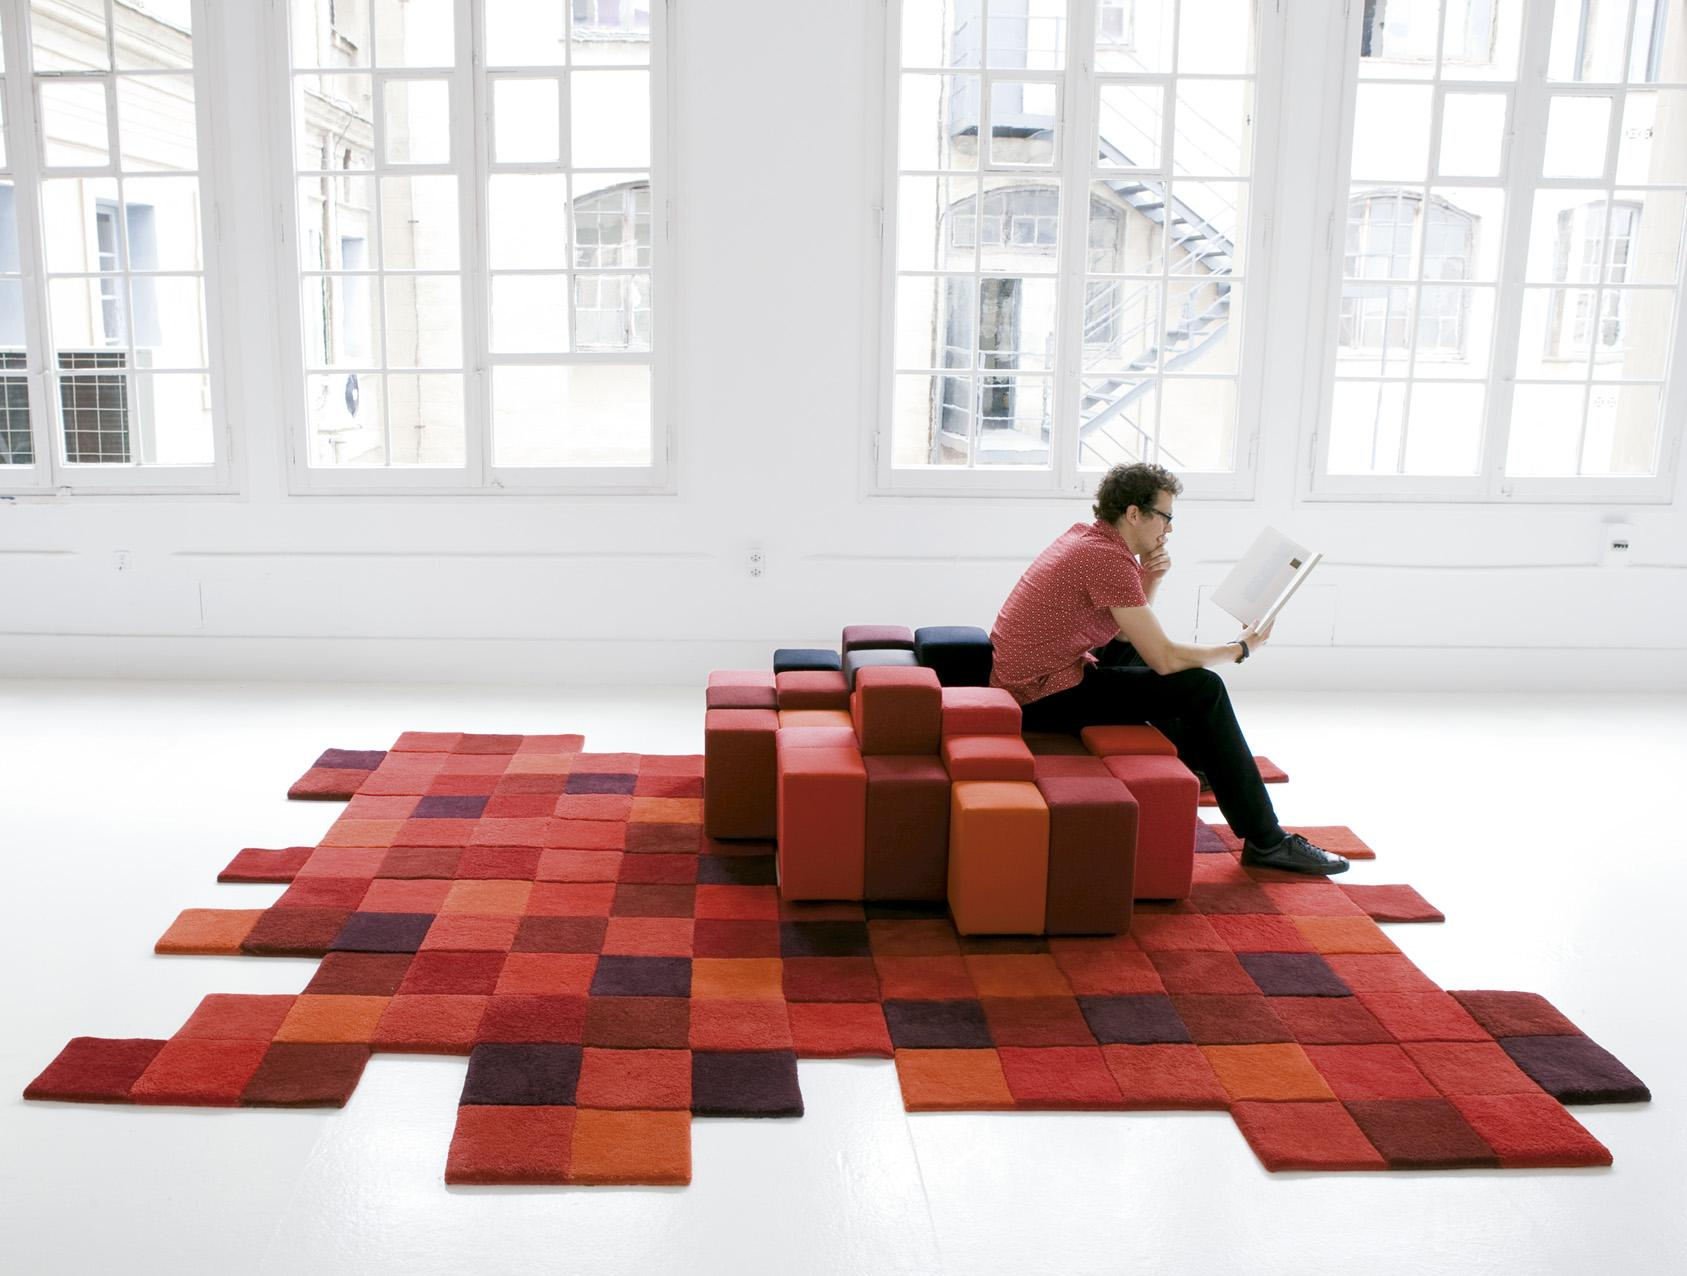 coolest rugs   weirdrest rugs  coit -  coolest rugs  couch rug